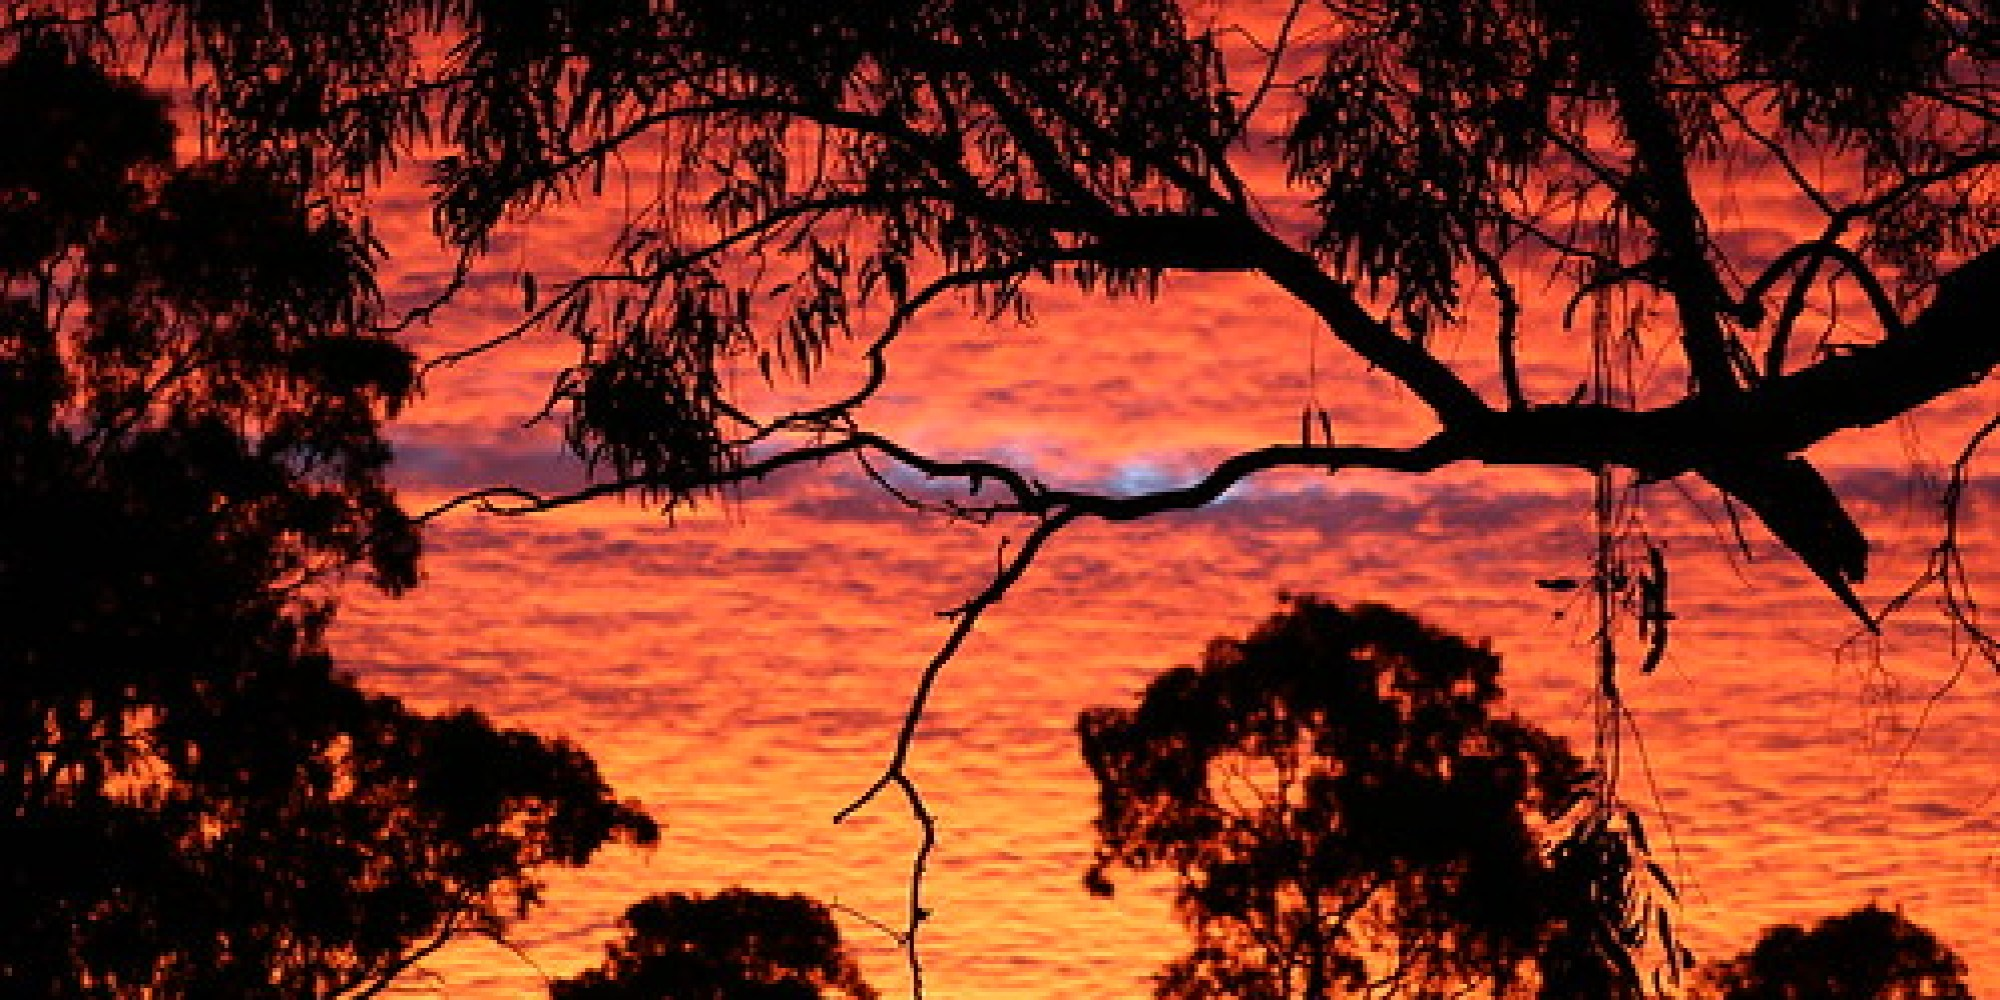 The burning sky - an Australian sunset